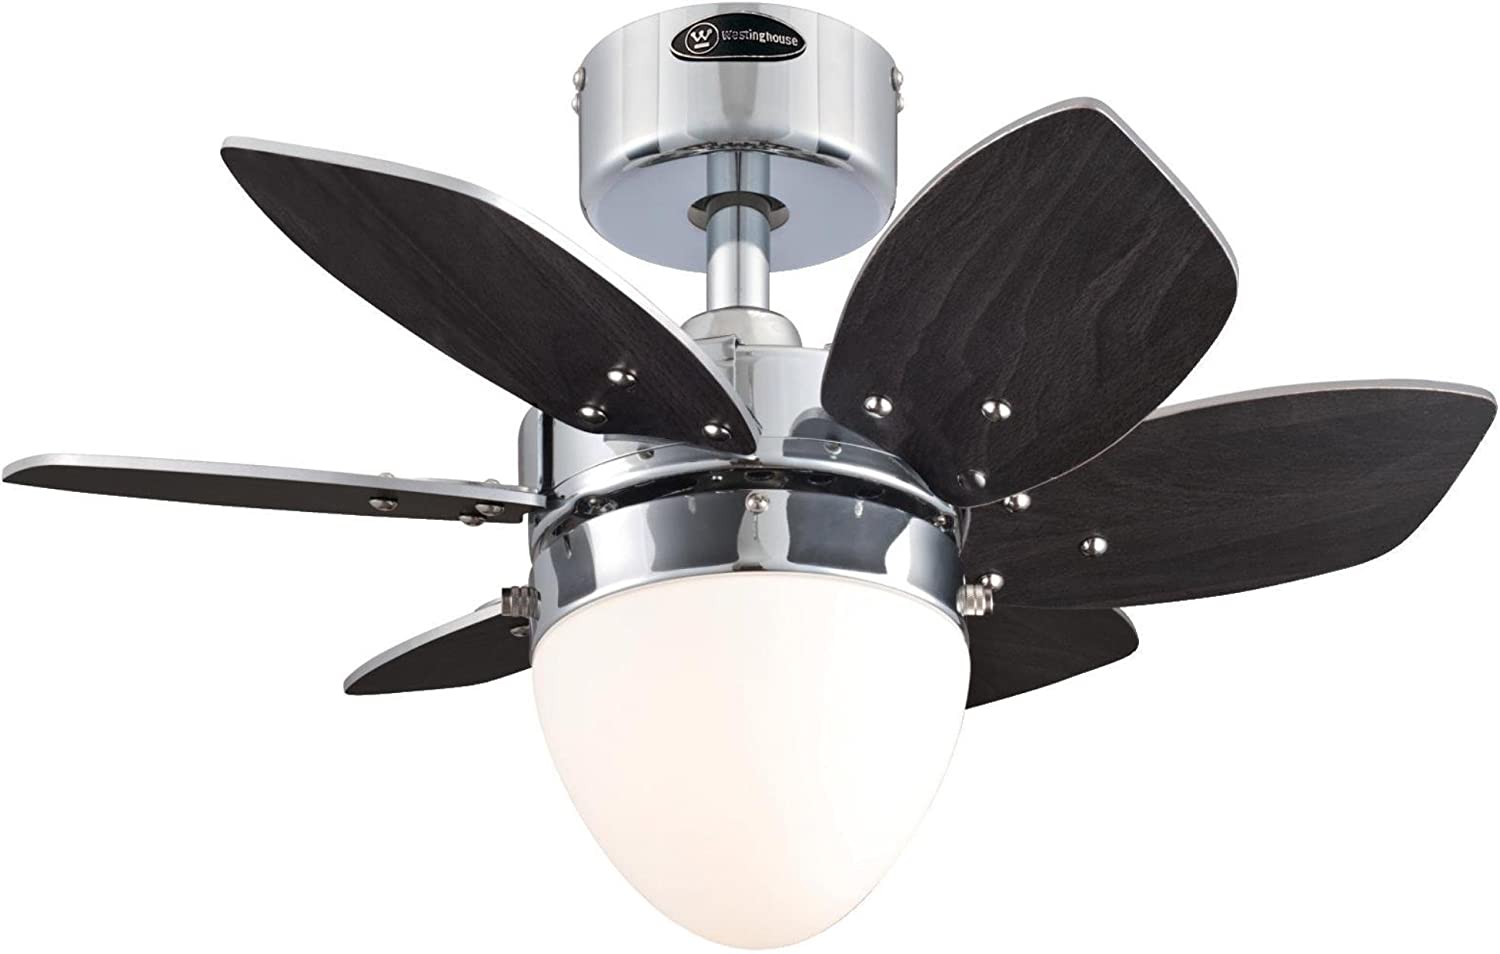 Westinghouse Lighting 7864400 Origami Single-Light 24-Inch Reversible Six-Blade Indoor Ceiling Fan, Chrome with Opal Frosted Glass